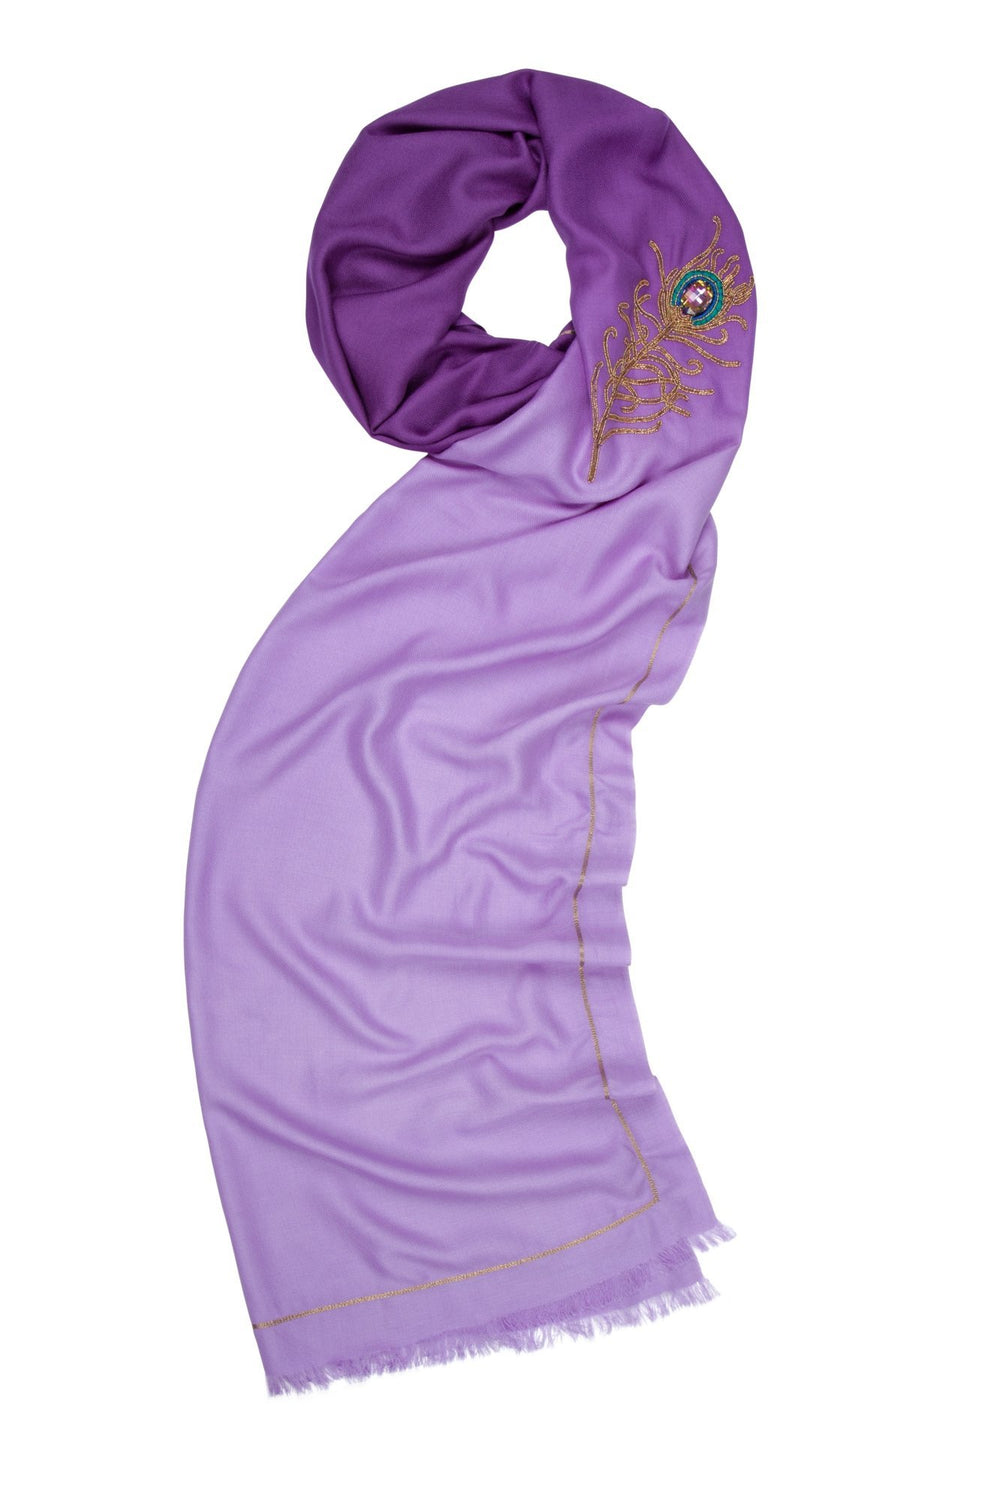 7th Heaven angel Raphael purple spiritual wrap scarf